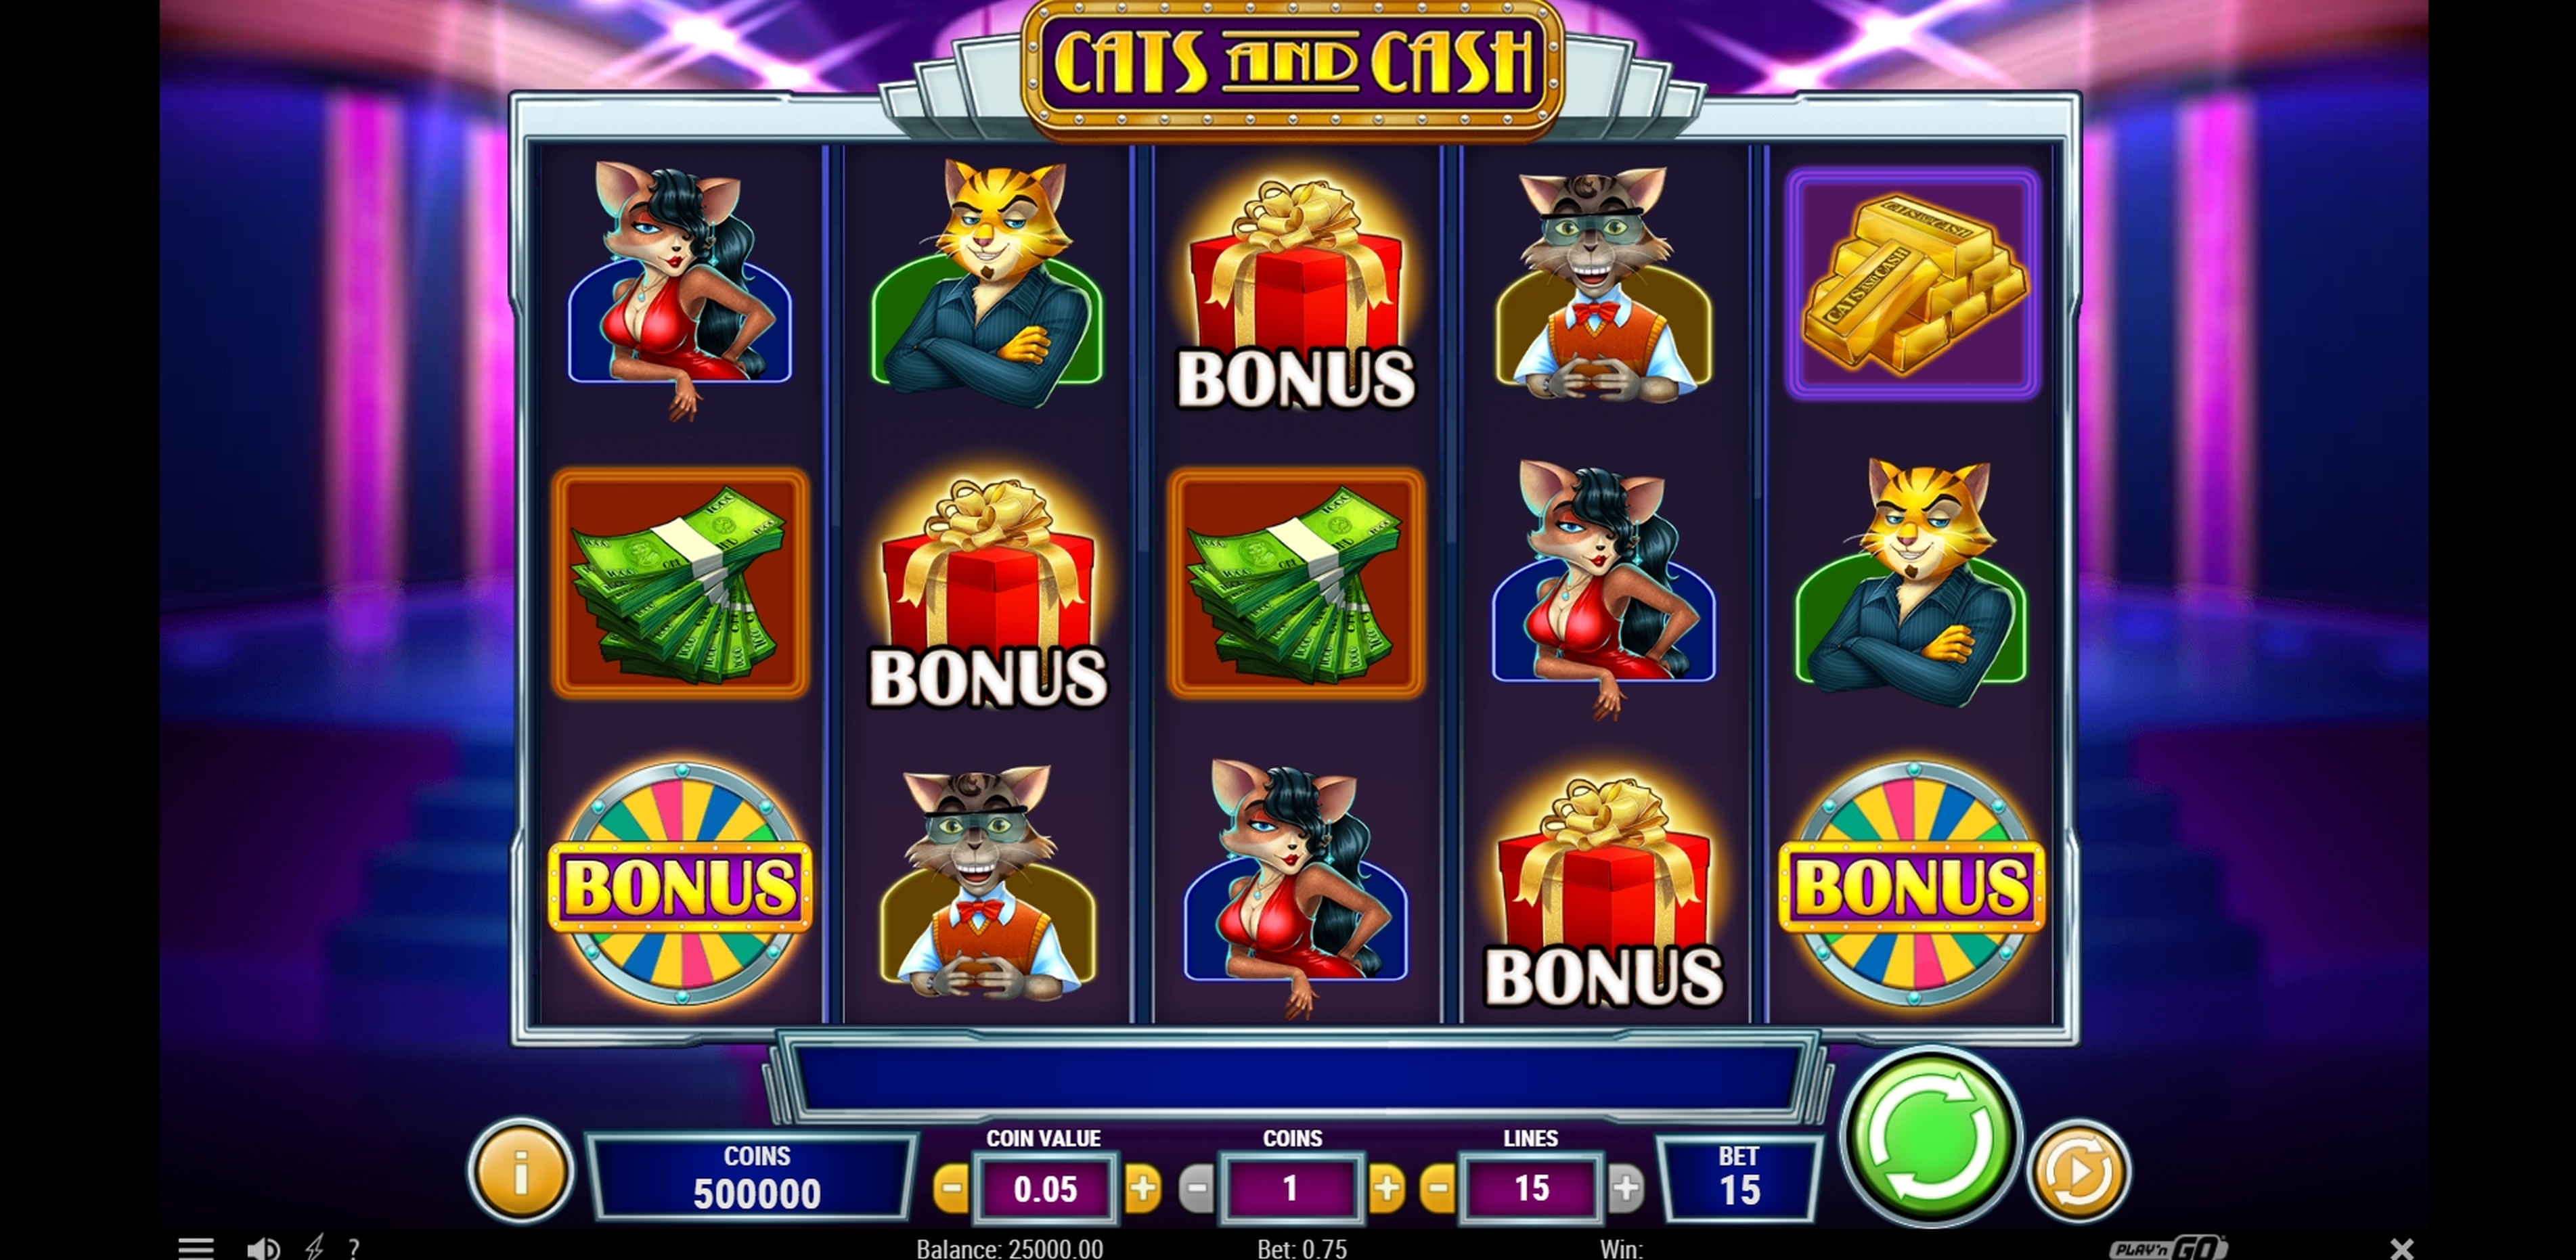 Reels in Cats and Cash Slot Game by Playn GO